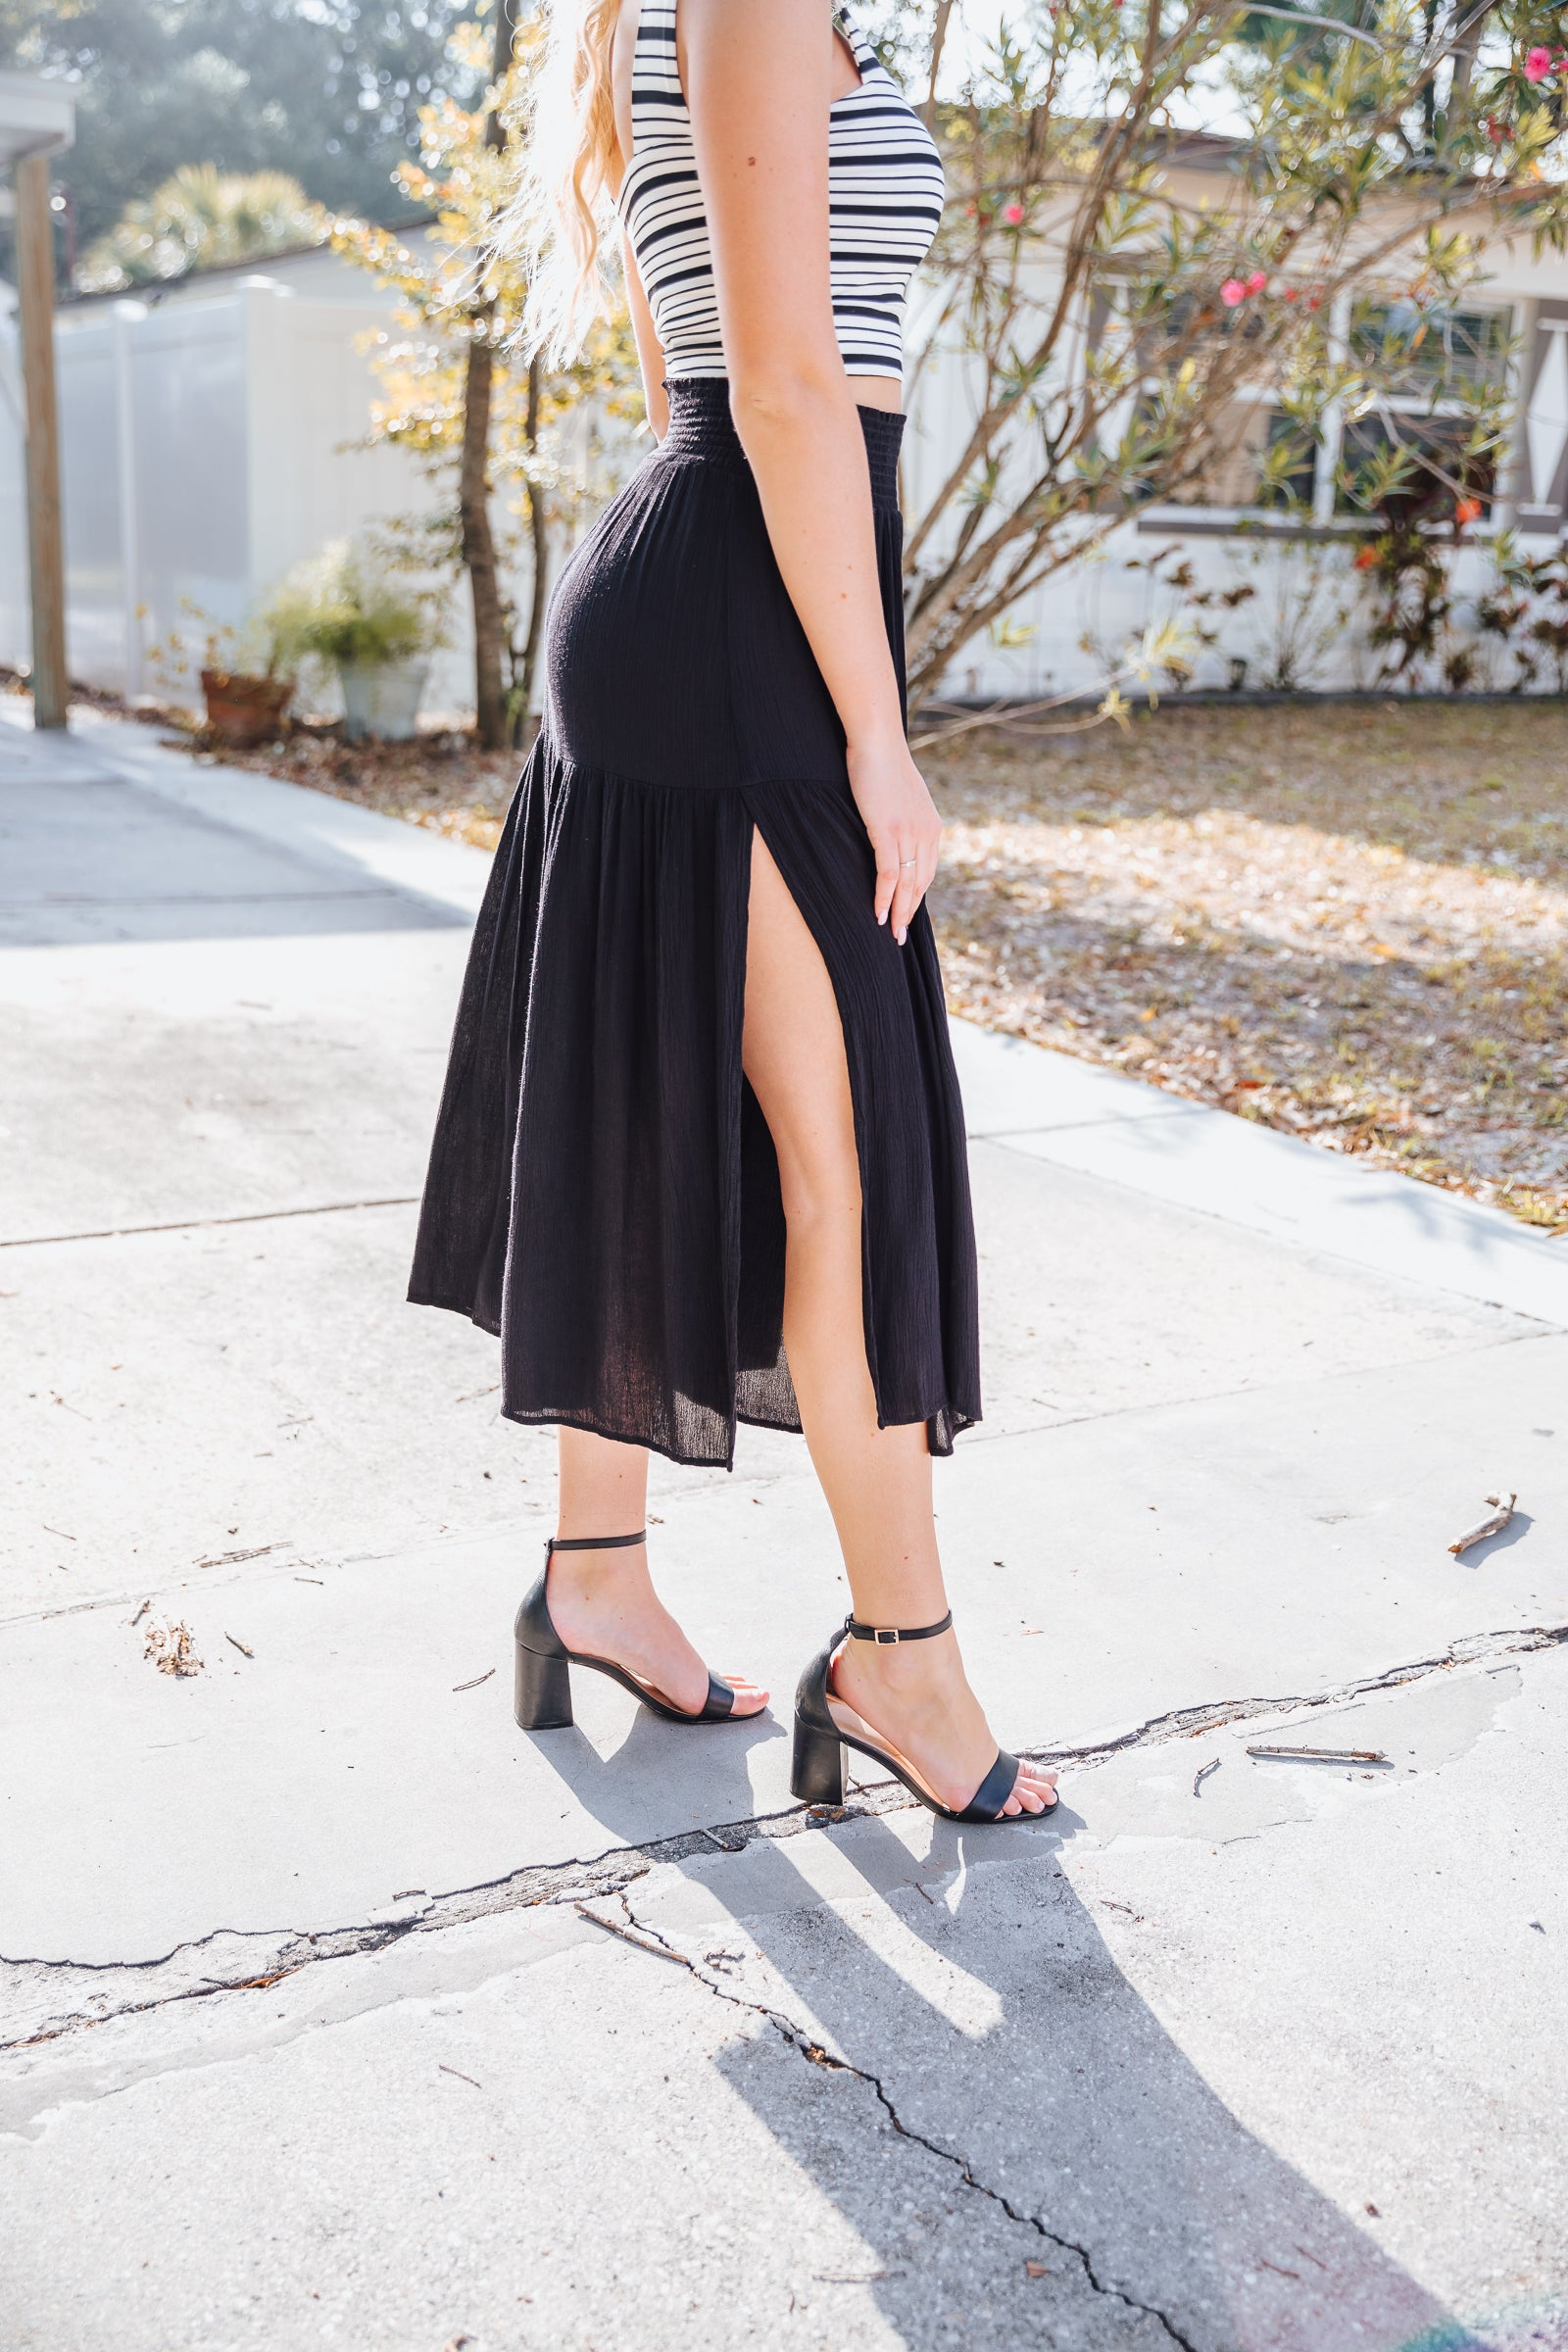 This black skirt has a thick smocked waistband and flows down into a tiered hem with slits at the side. Style this lightweight maxi skirt with a bodysuit.